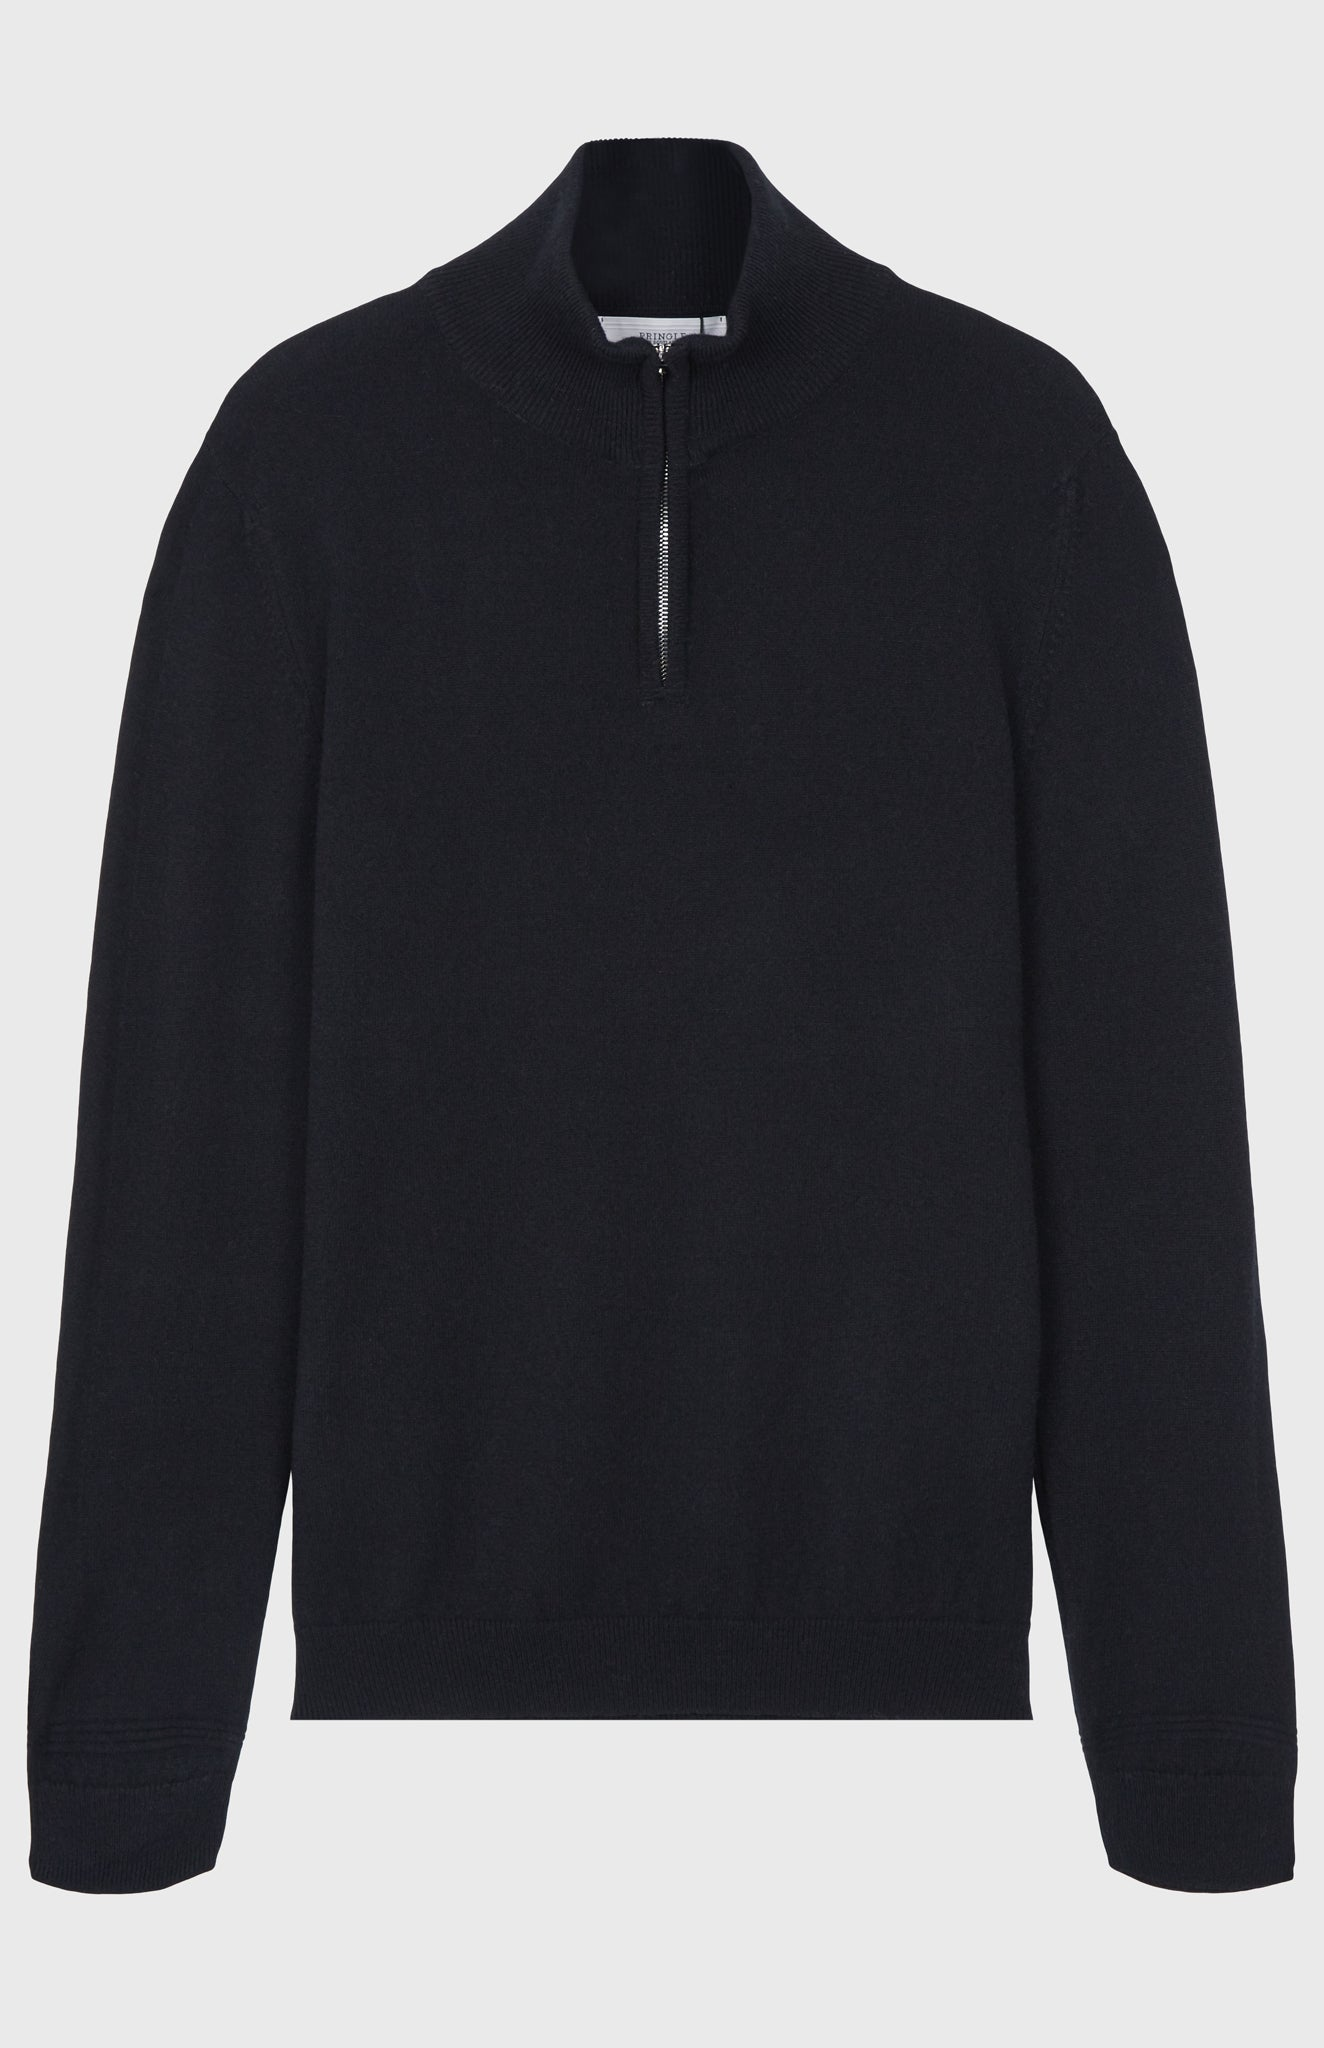 Zip Neck Cashmere Jumper In Black